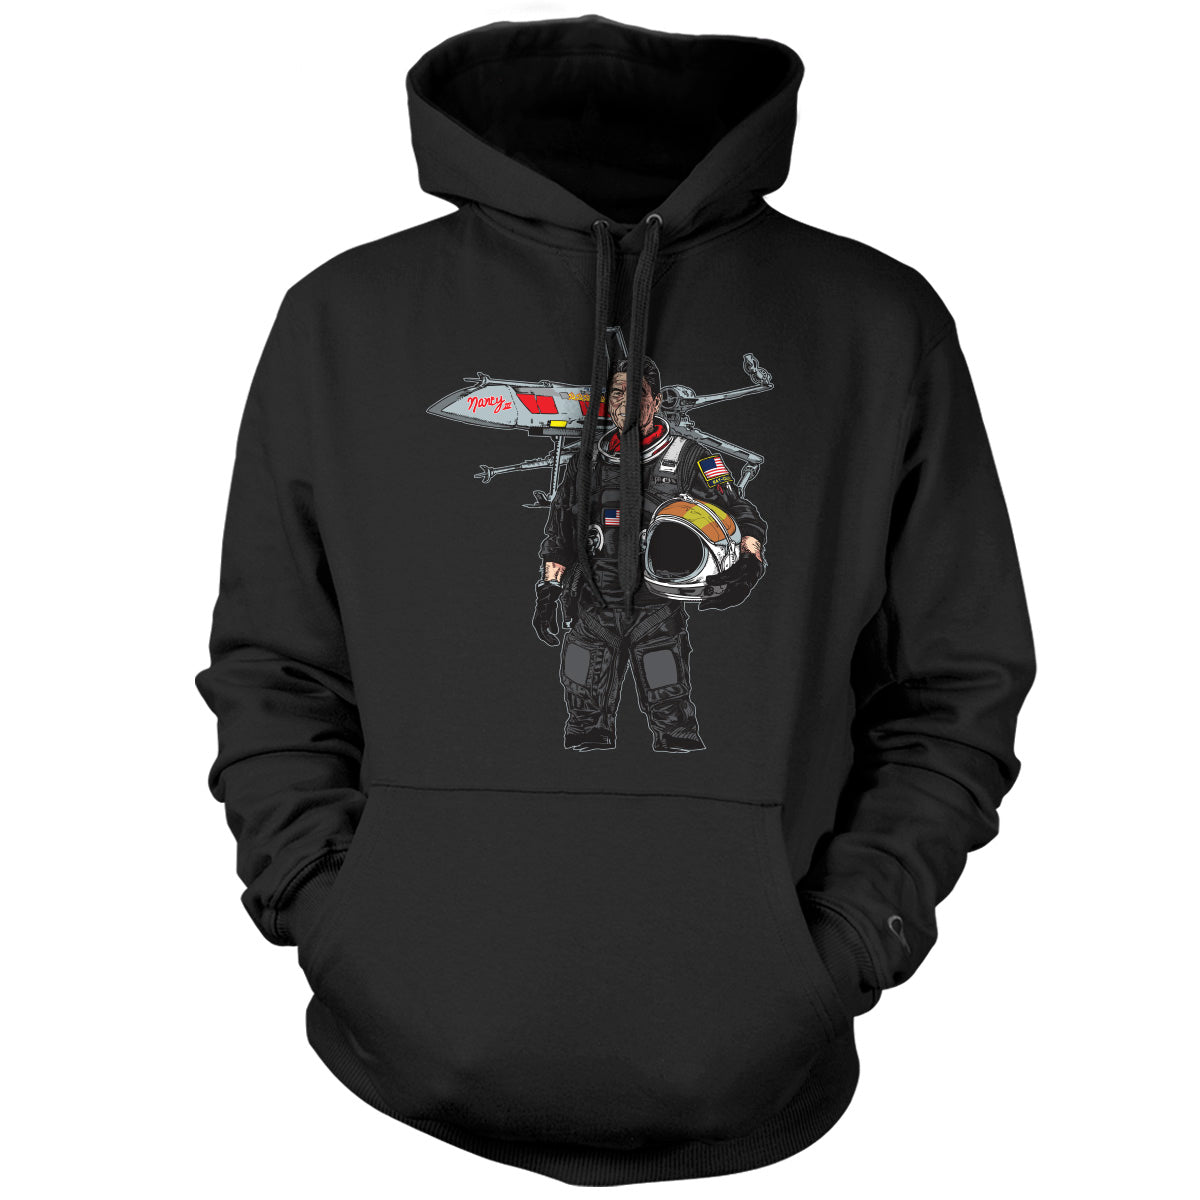 Original Pipe Hitter - Ronnie Hoodie - Black - Hoodies - Pipe Hitters Union